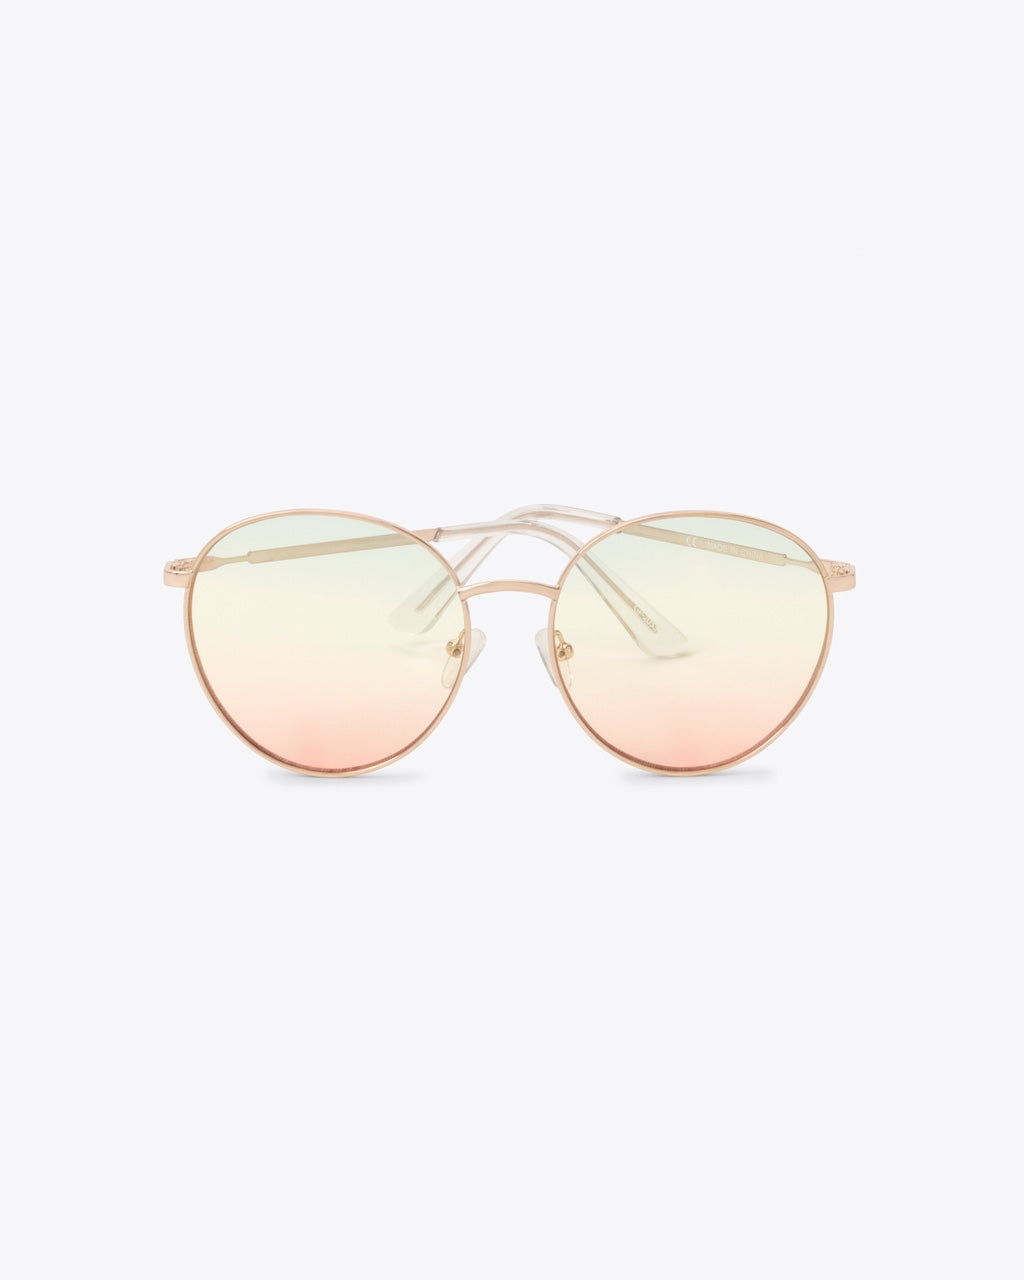 Oversized round sunglasses with lightly tinted rainbow lens and a thin frame